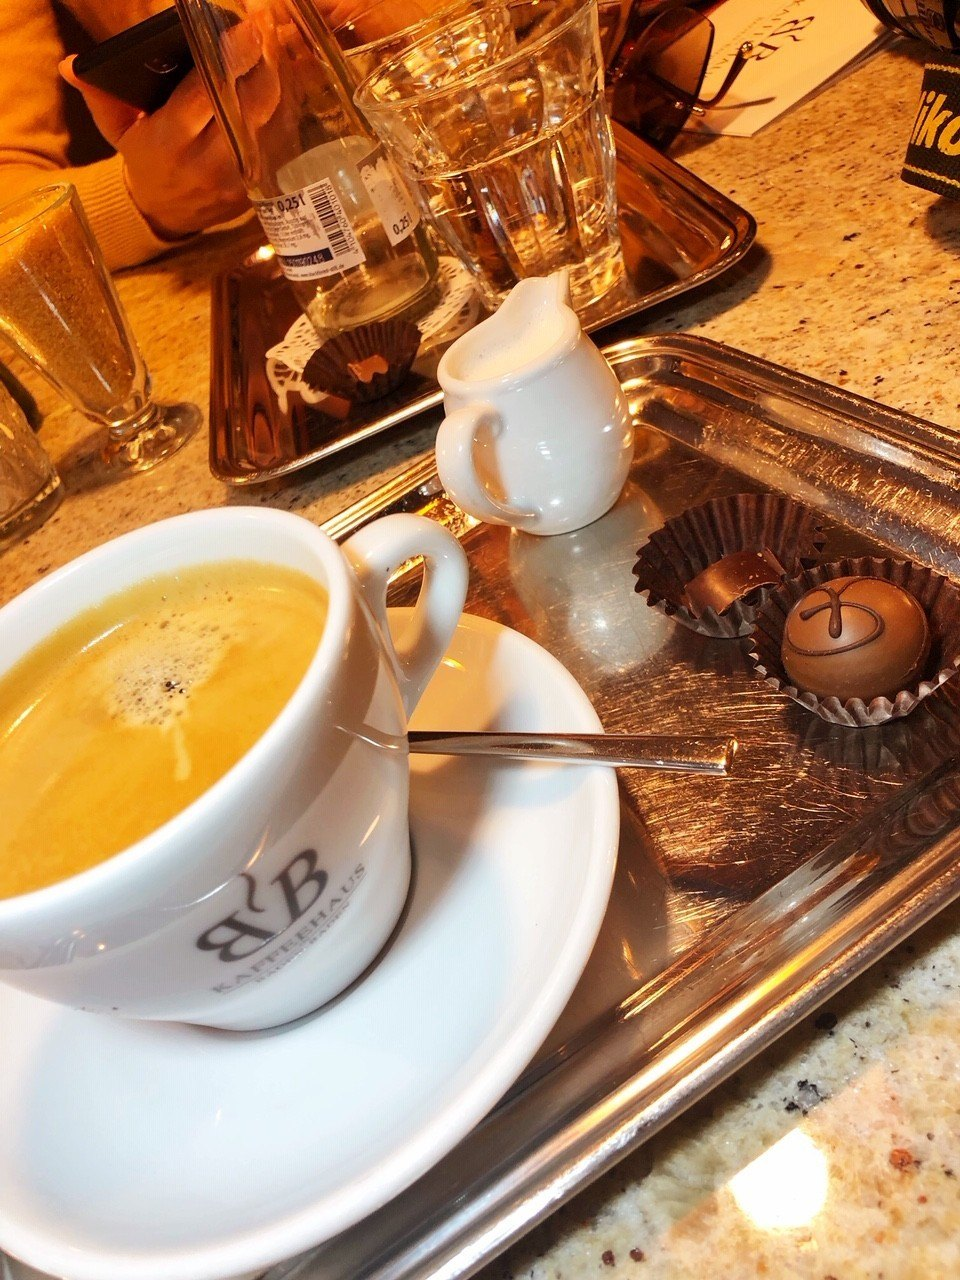 white cup of coffee and saucer on silver tray with milk and chocolates